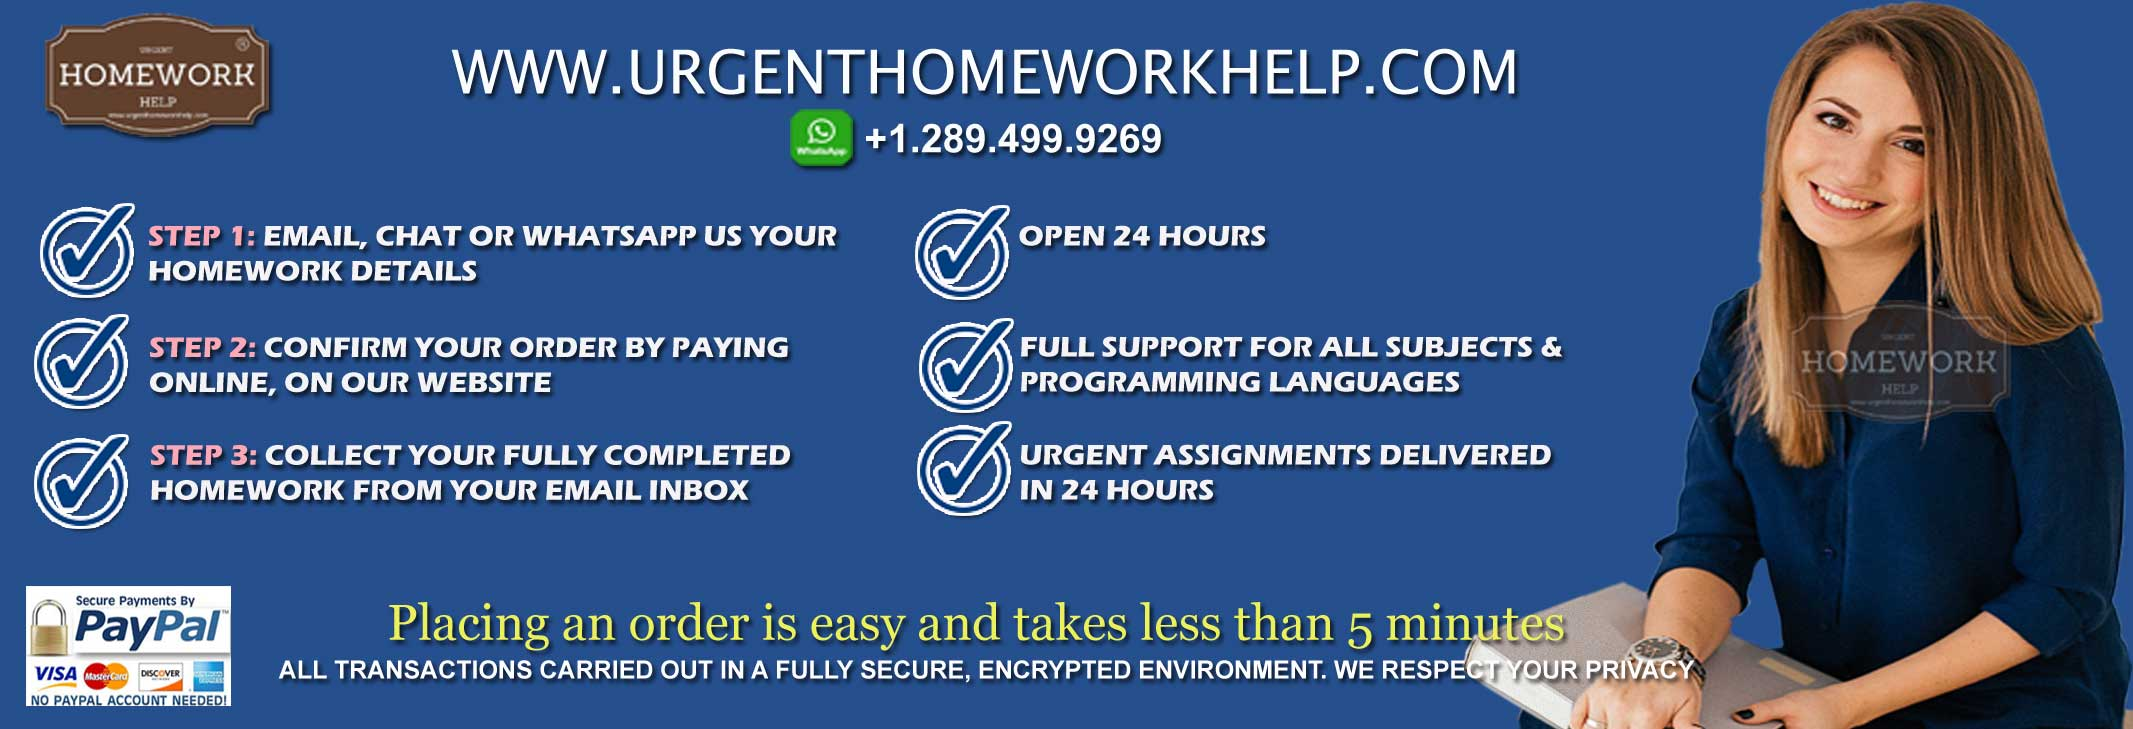 top assignment writing jobs at urgenthomeworkhelp.com